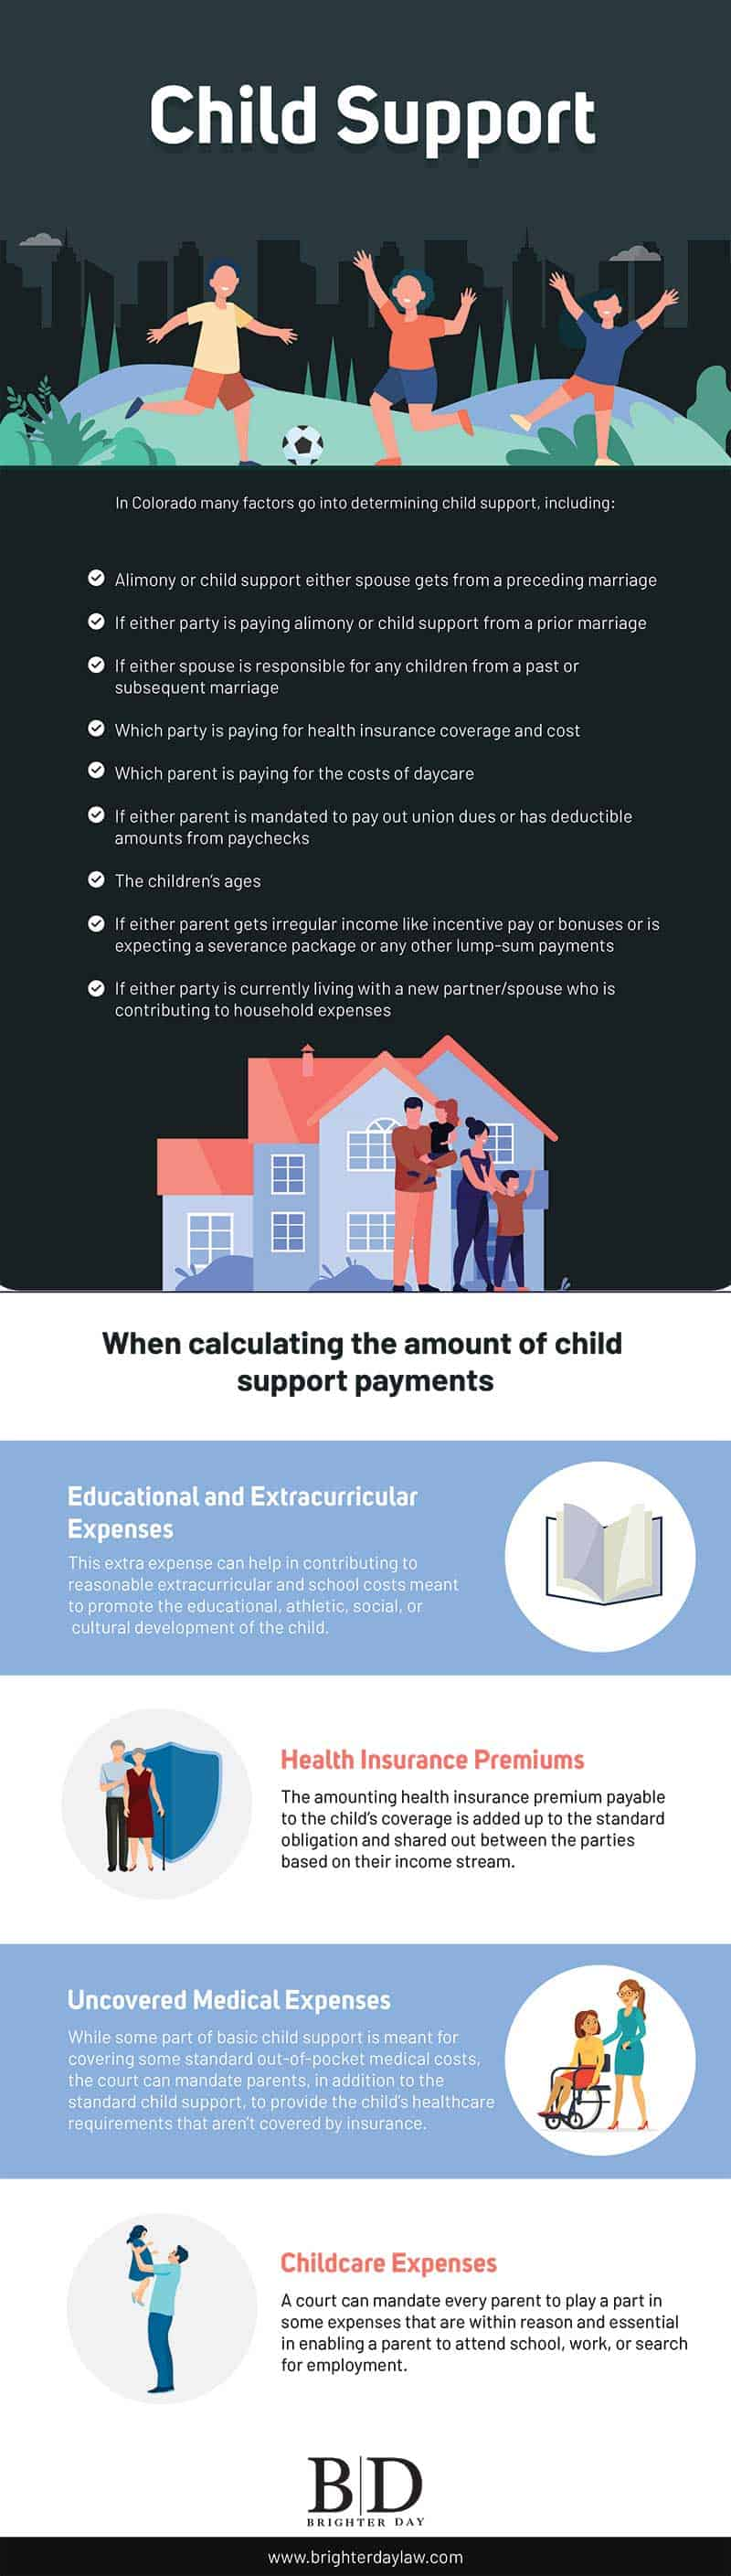 Child Support - Infographic